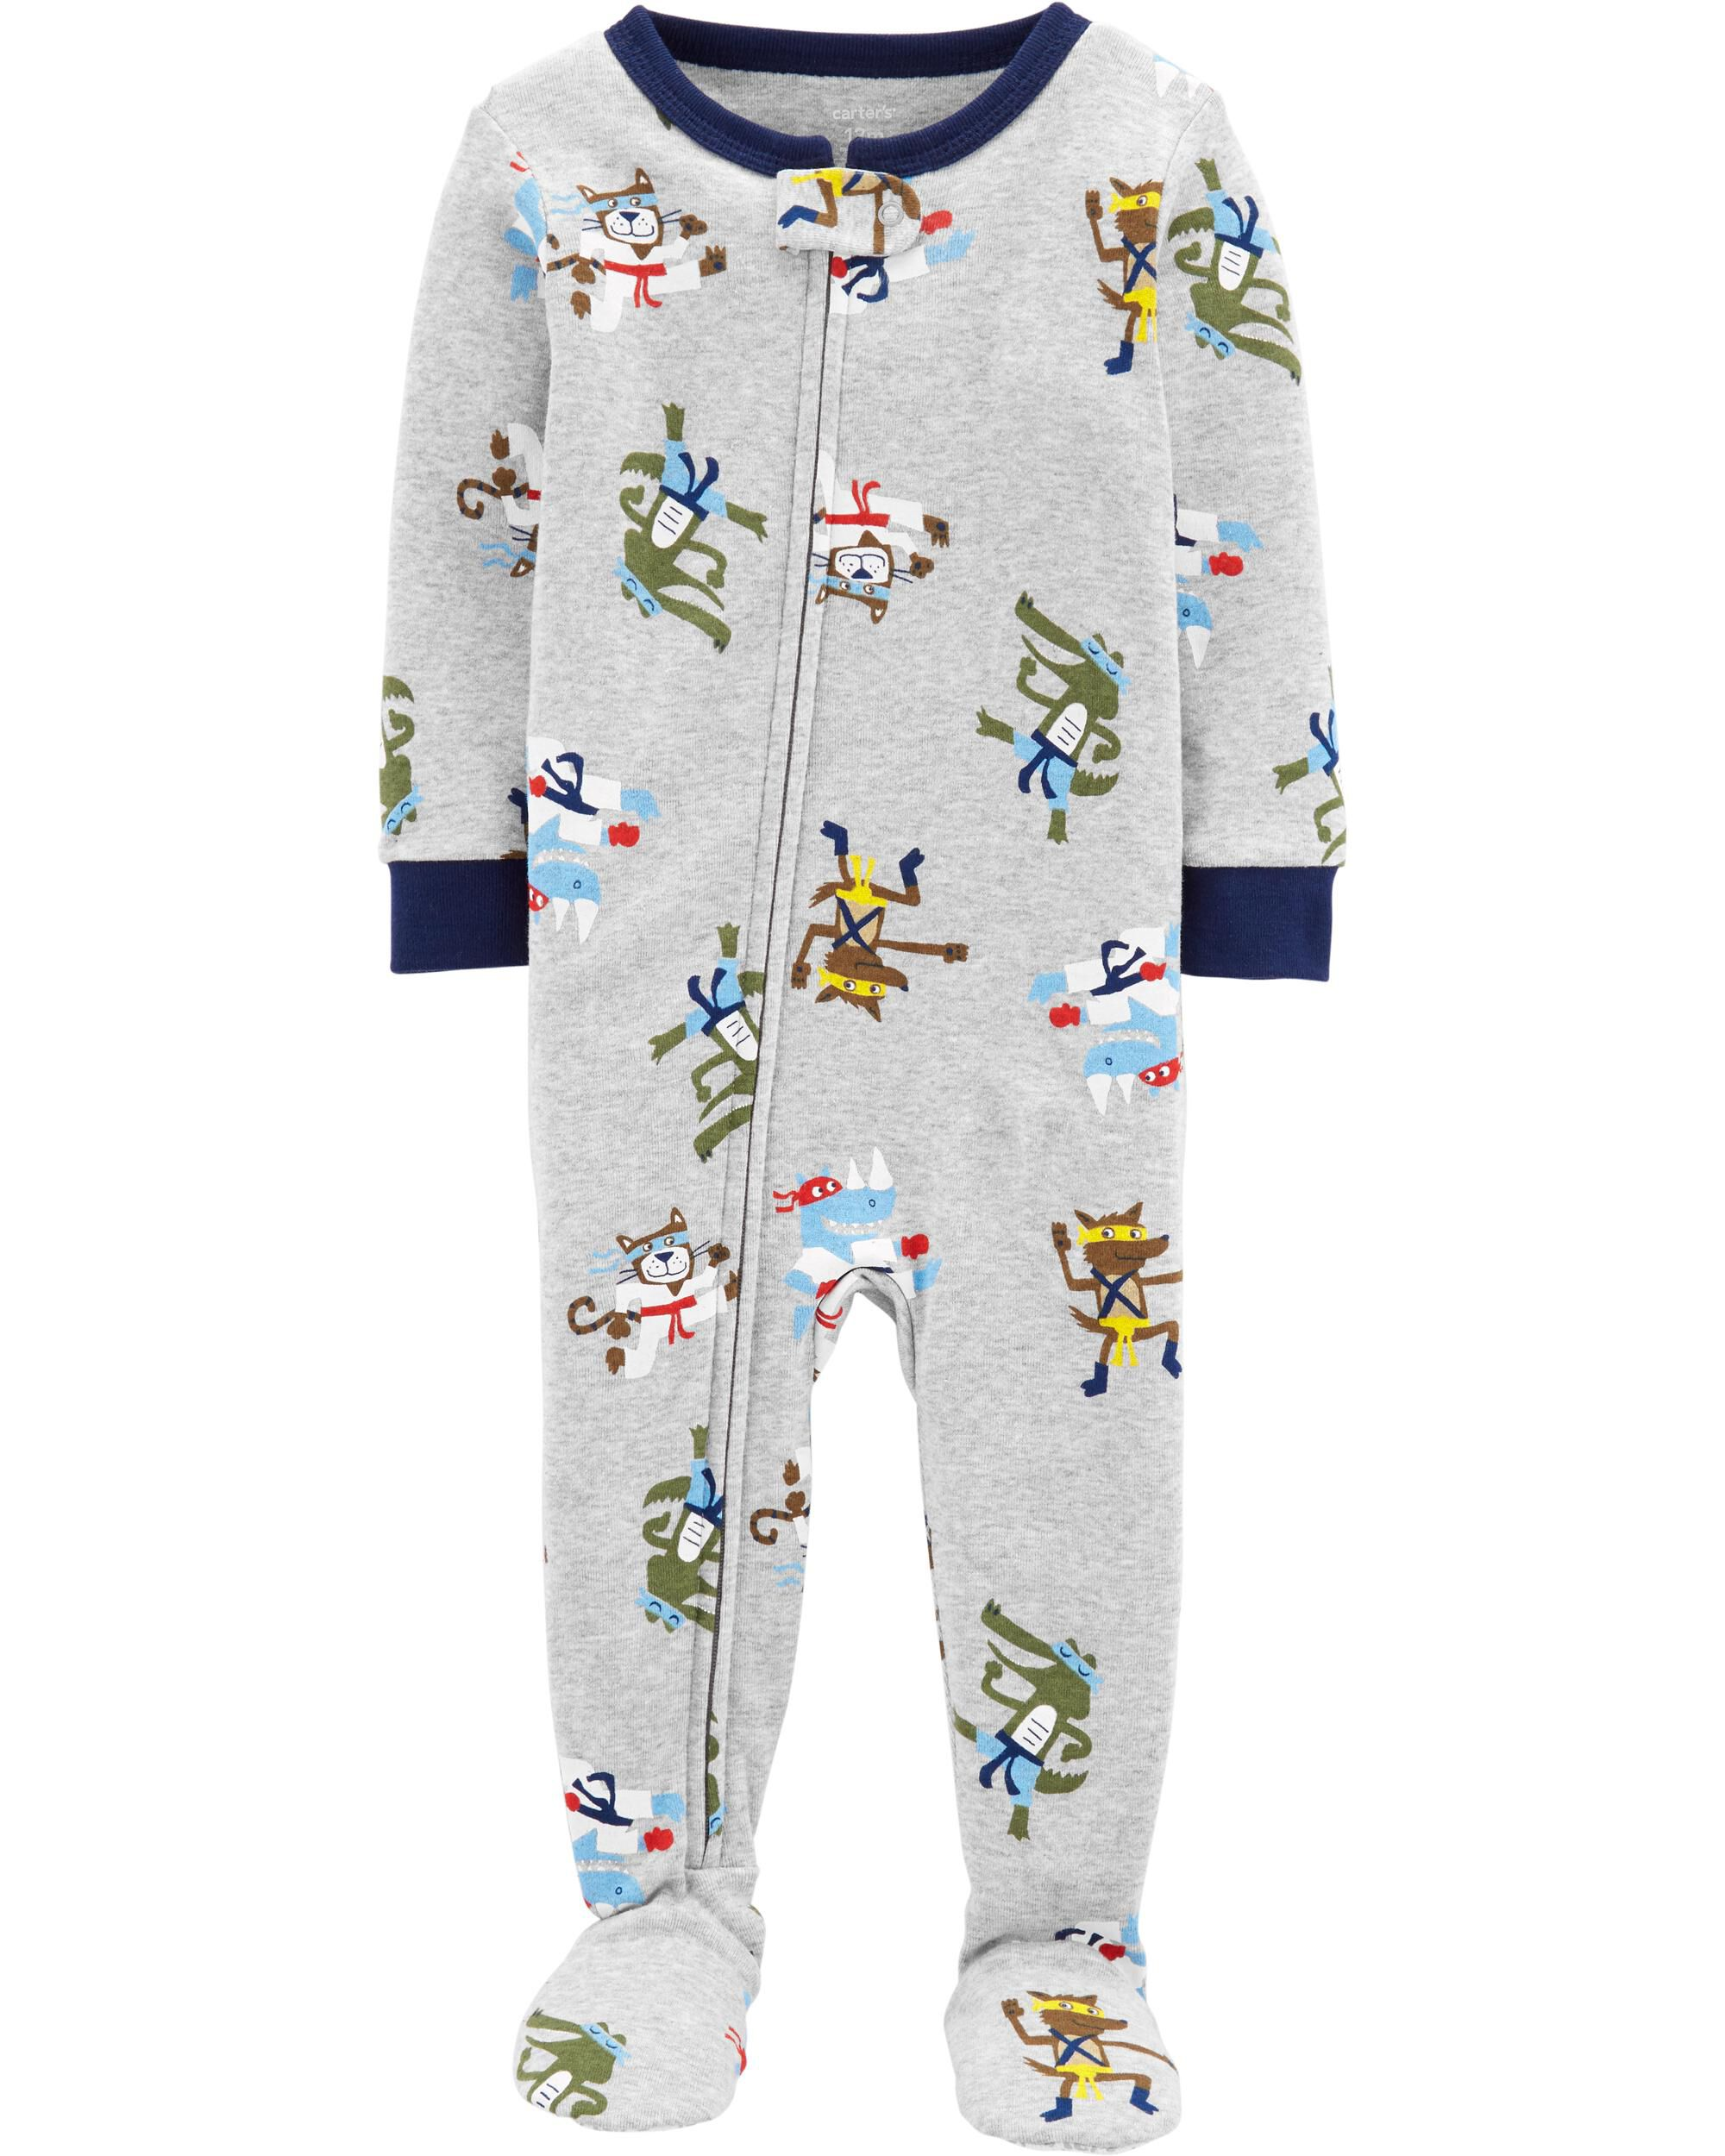 Carters Lot Of 2 One Piece Fleece Pajama Owl Reindeer New With Tags And To Have A Long Life. 2t